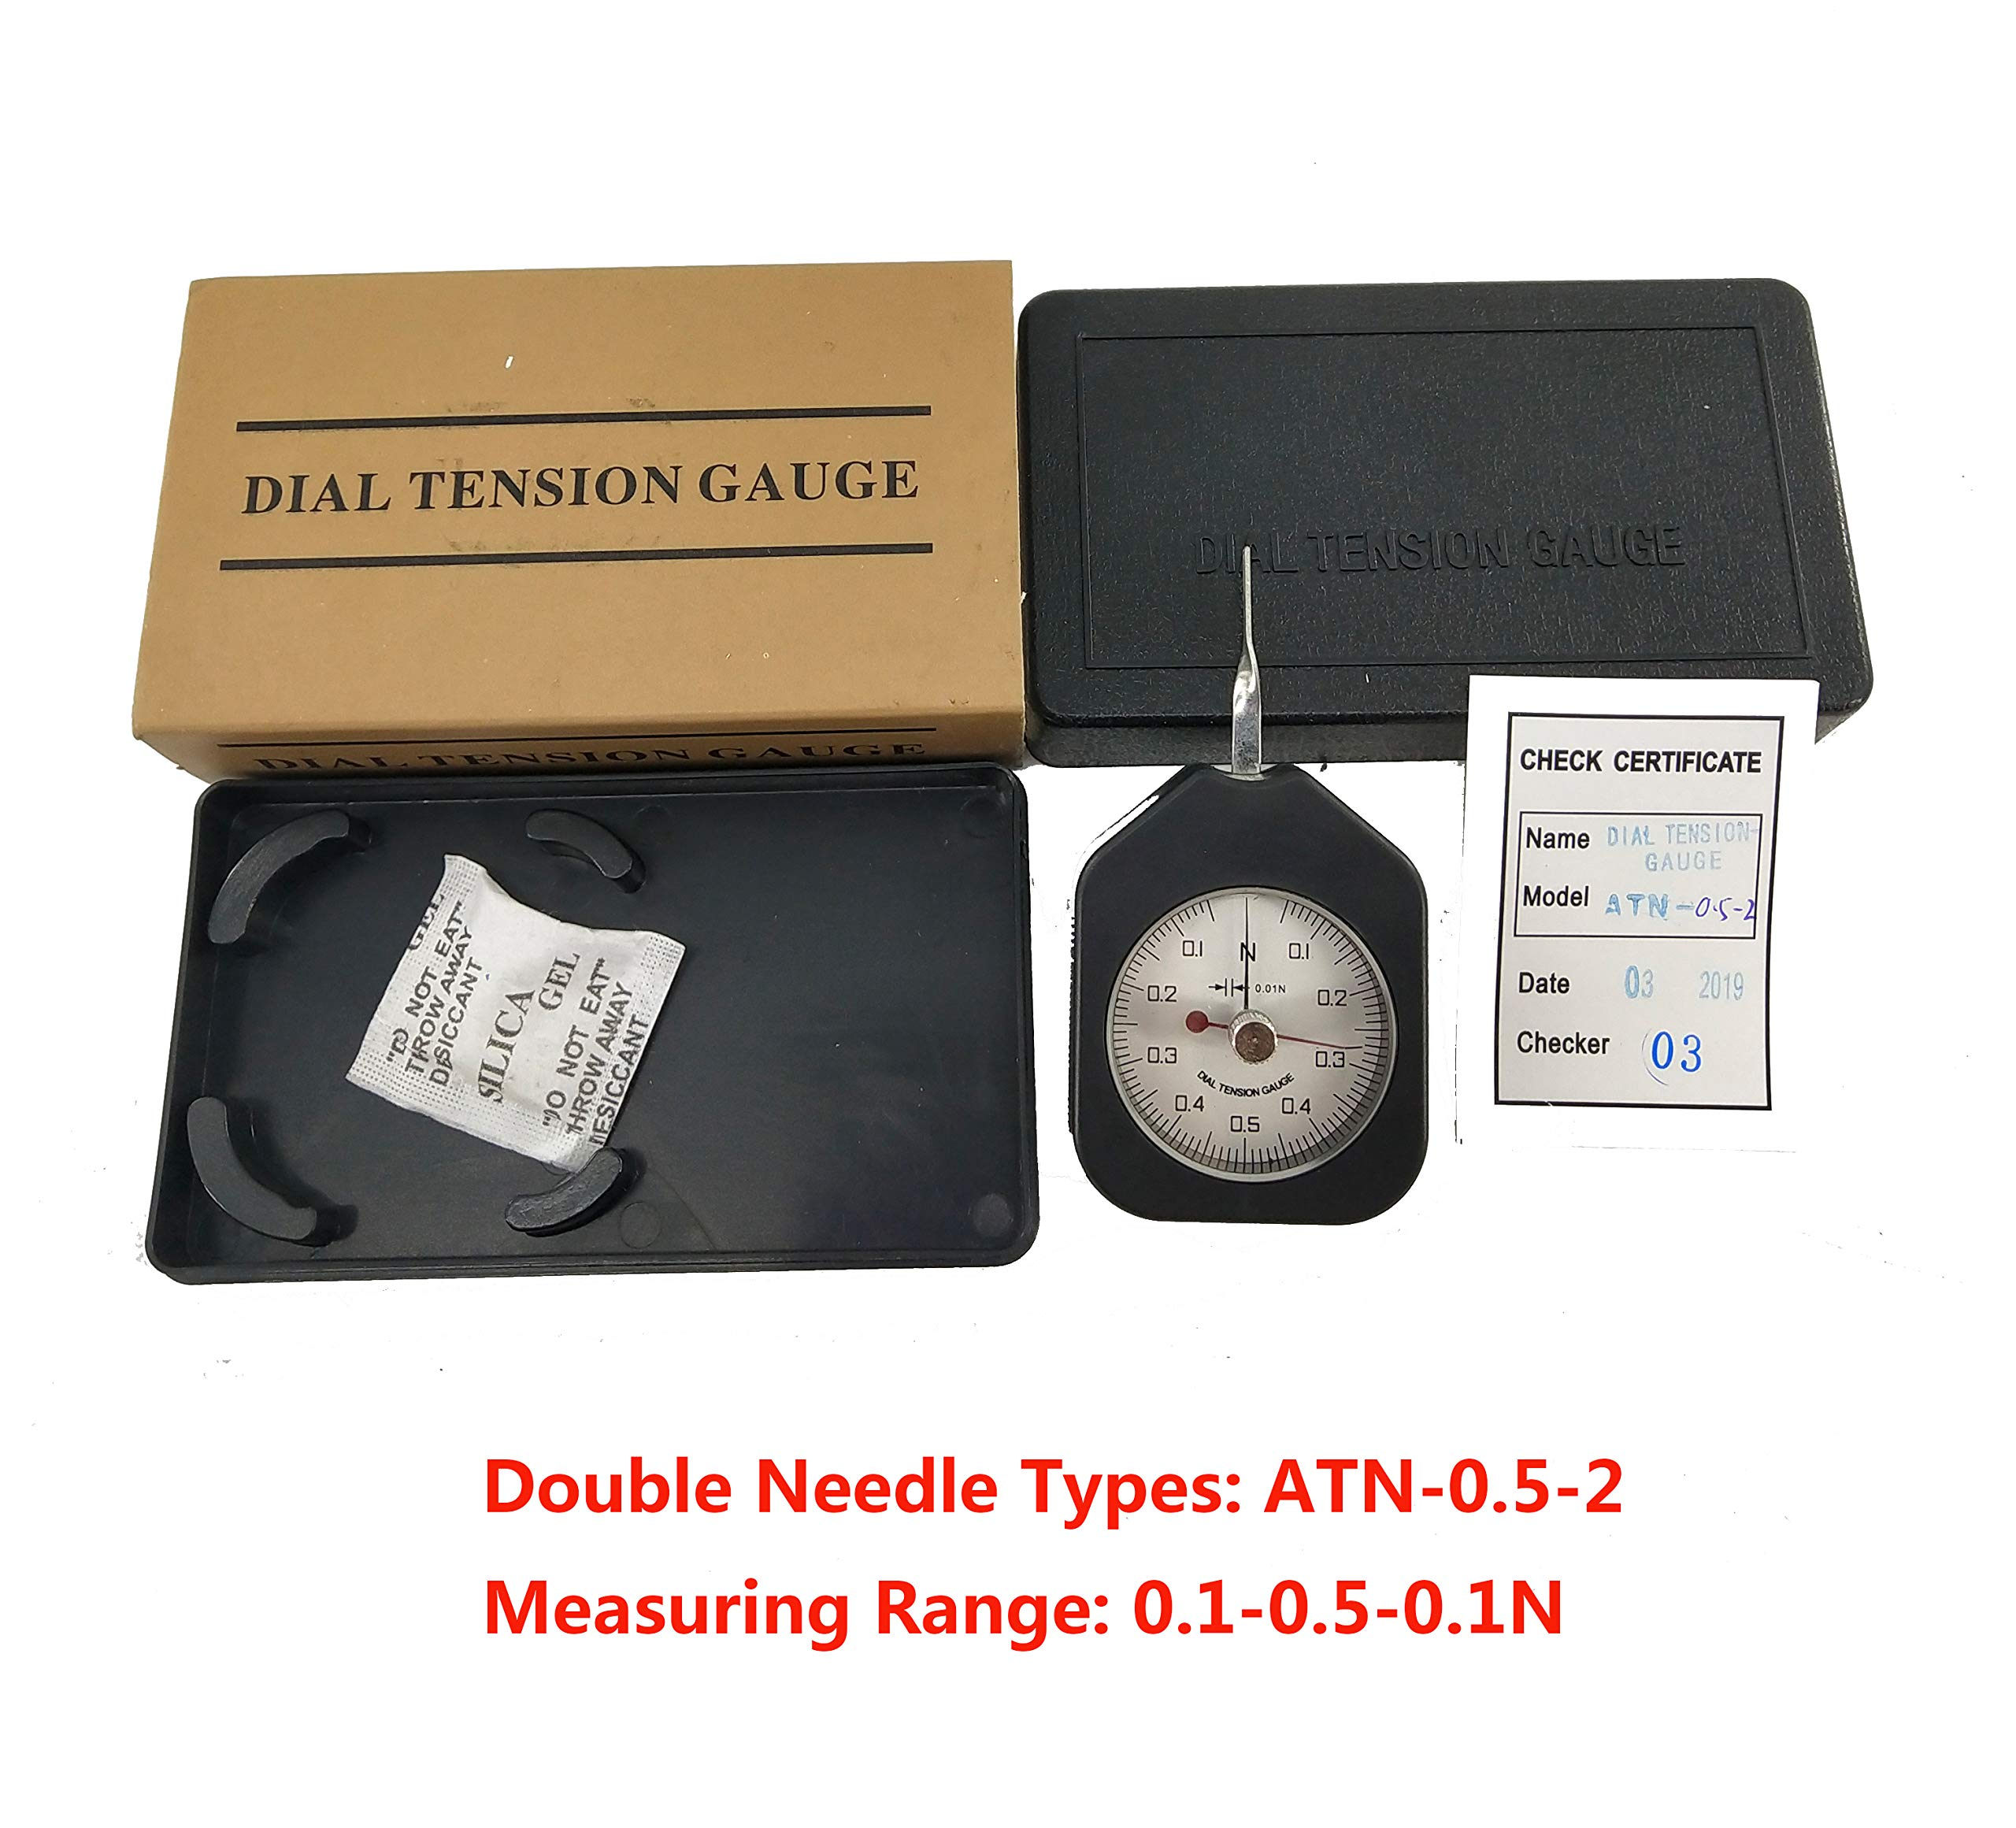 HFBTE ATN-0.5-2 Double Needle Dial Tension Gauge with 0.1-0.5-0.1N Measurement Range 0.02N Division Value by HFBTE